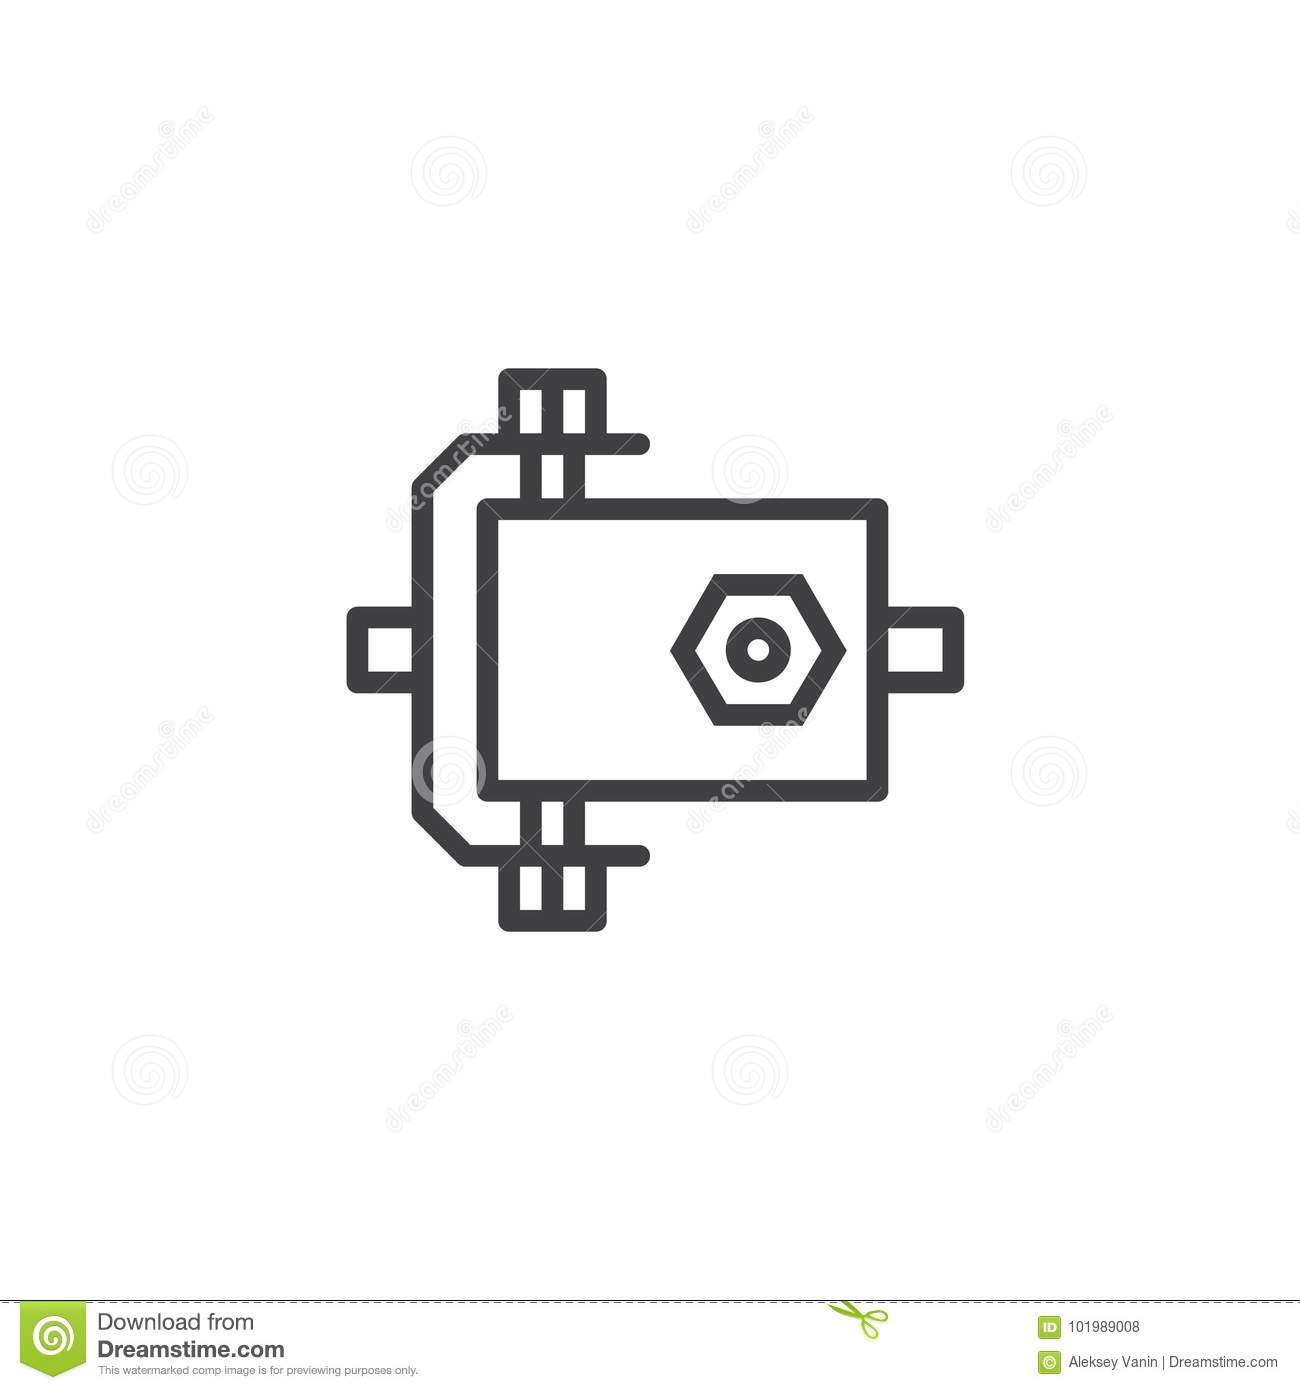 Car Engine Line Icon Stock Vector Illustration Of Simple 101989008 Diagram